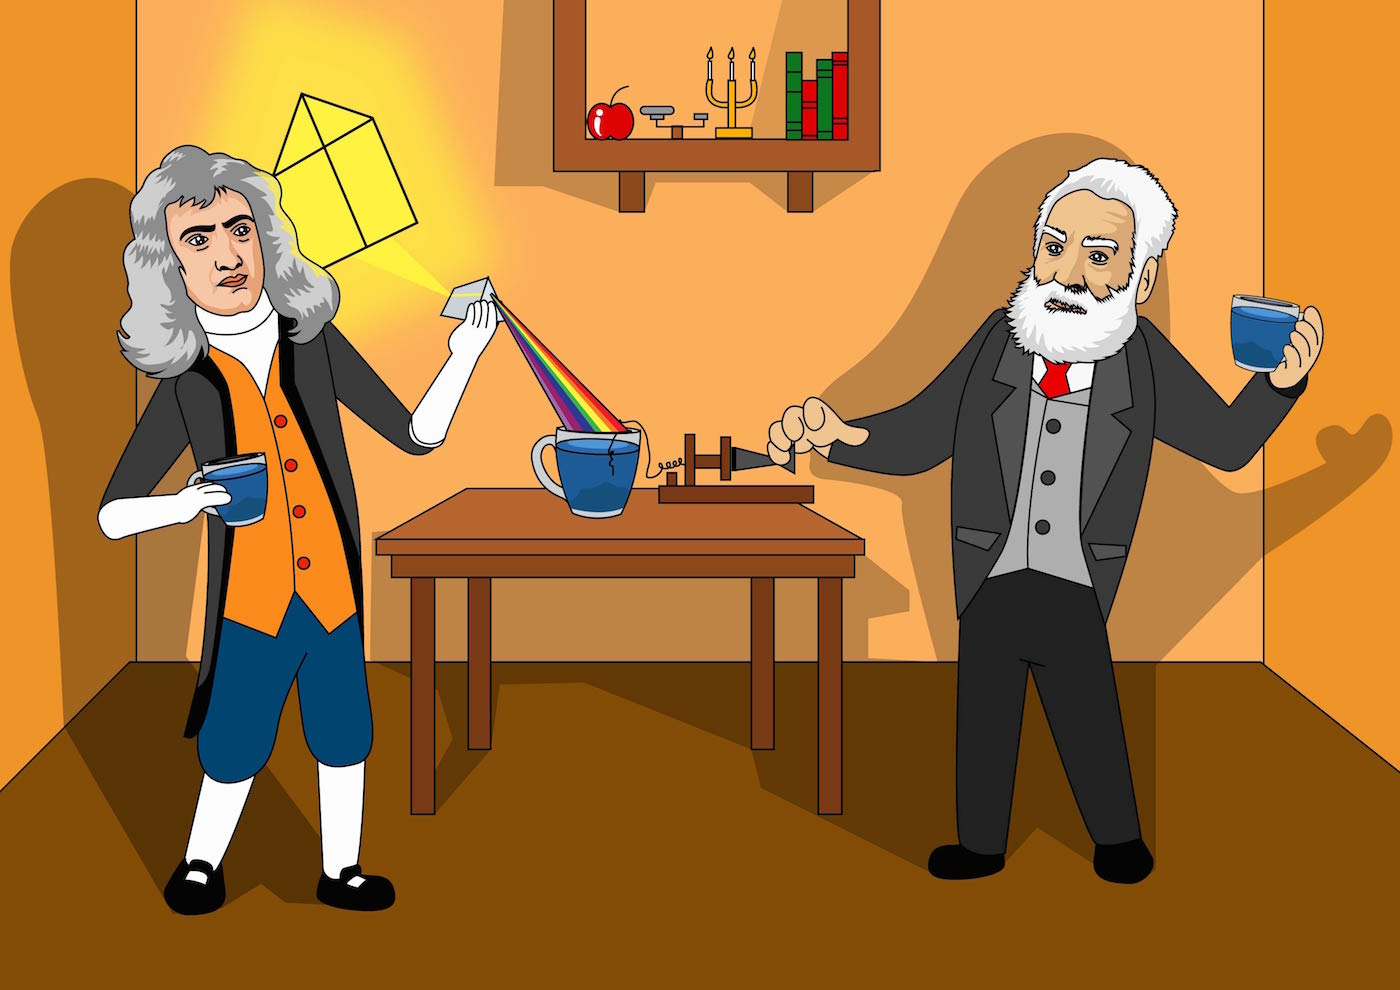 isaac newton and alexander graham bell studying palo azul